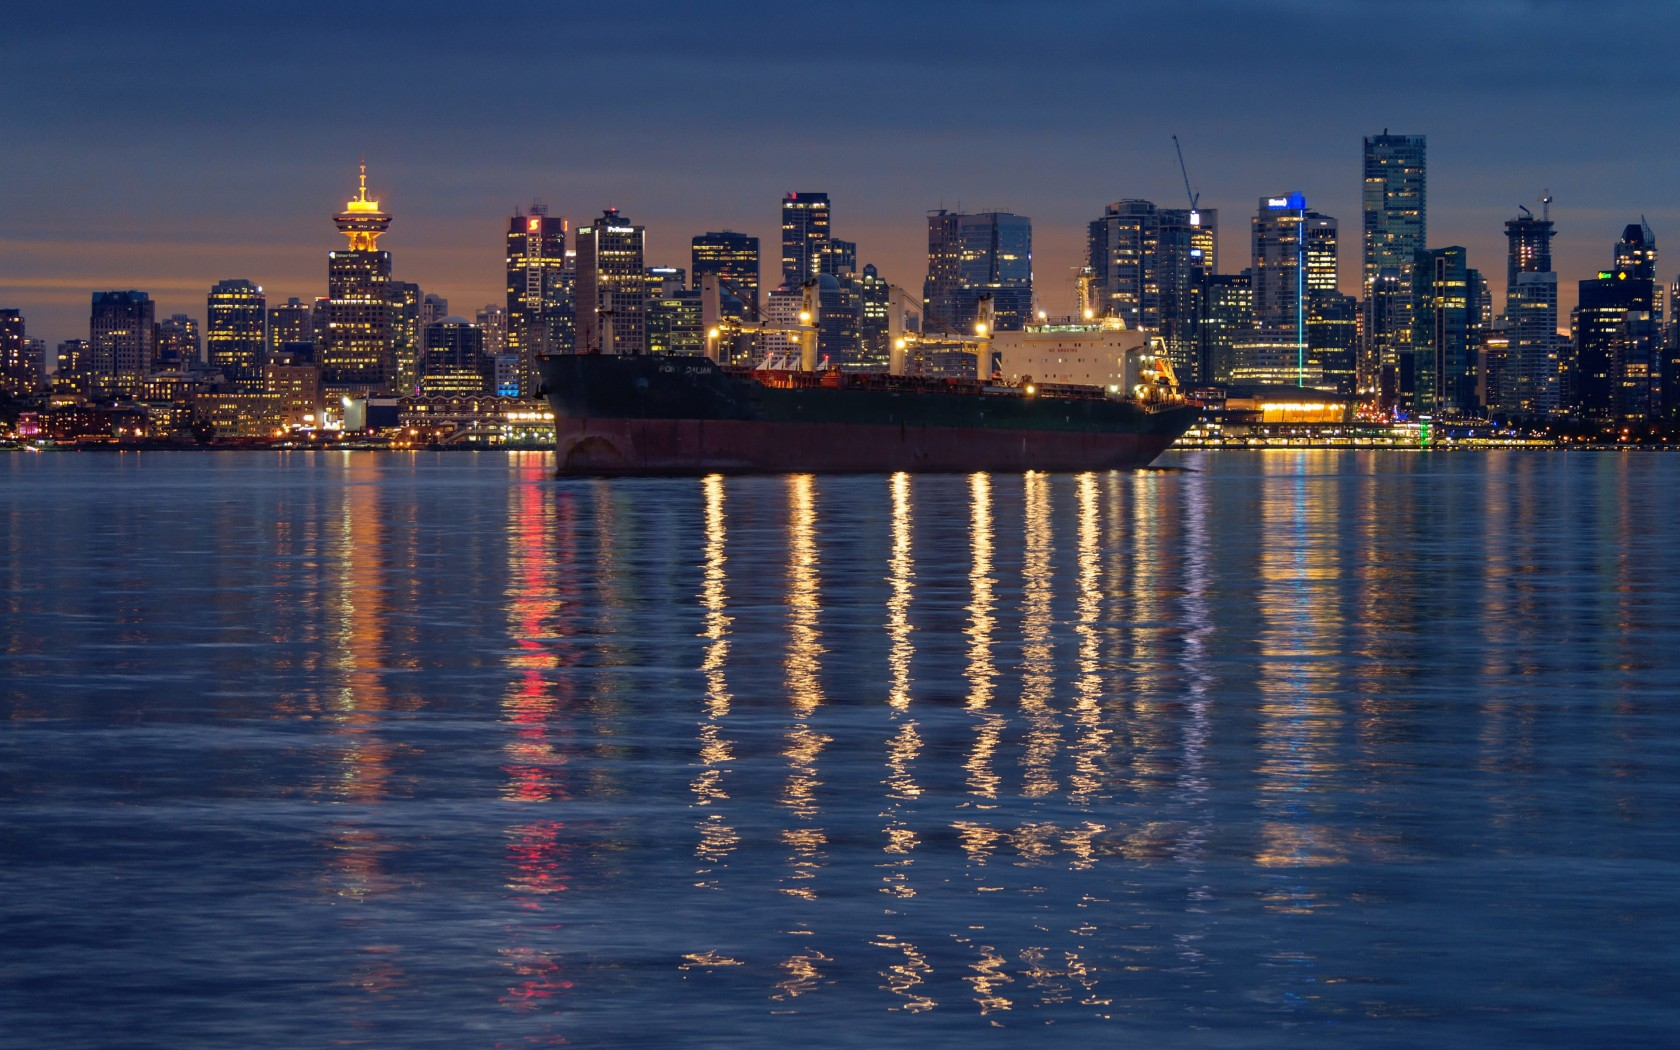 Downtown Vancouver, Canada Wallpaper for Desktop 1680x1050